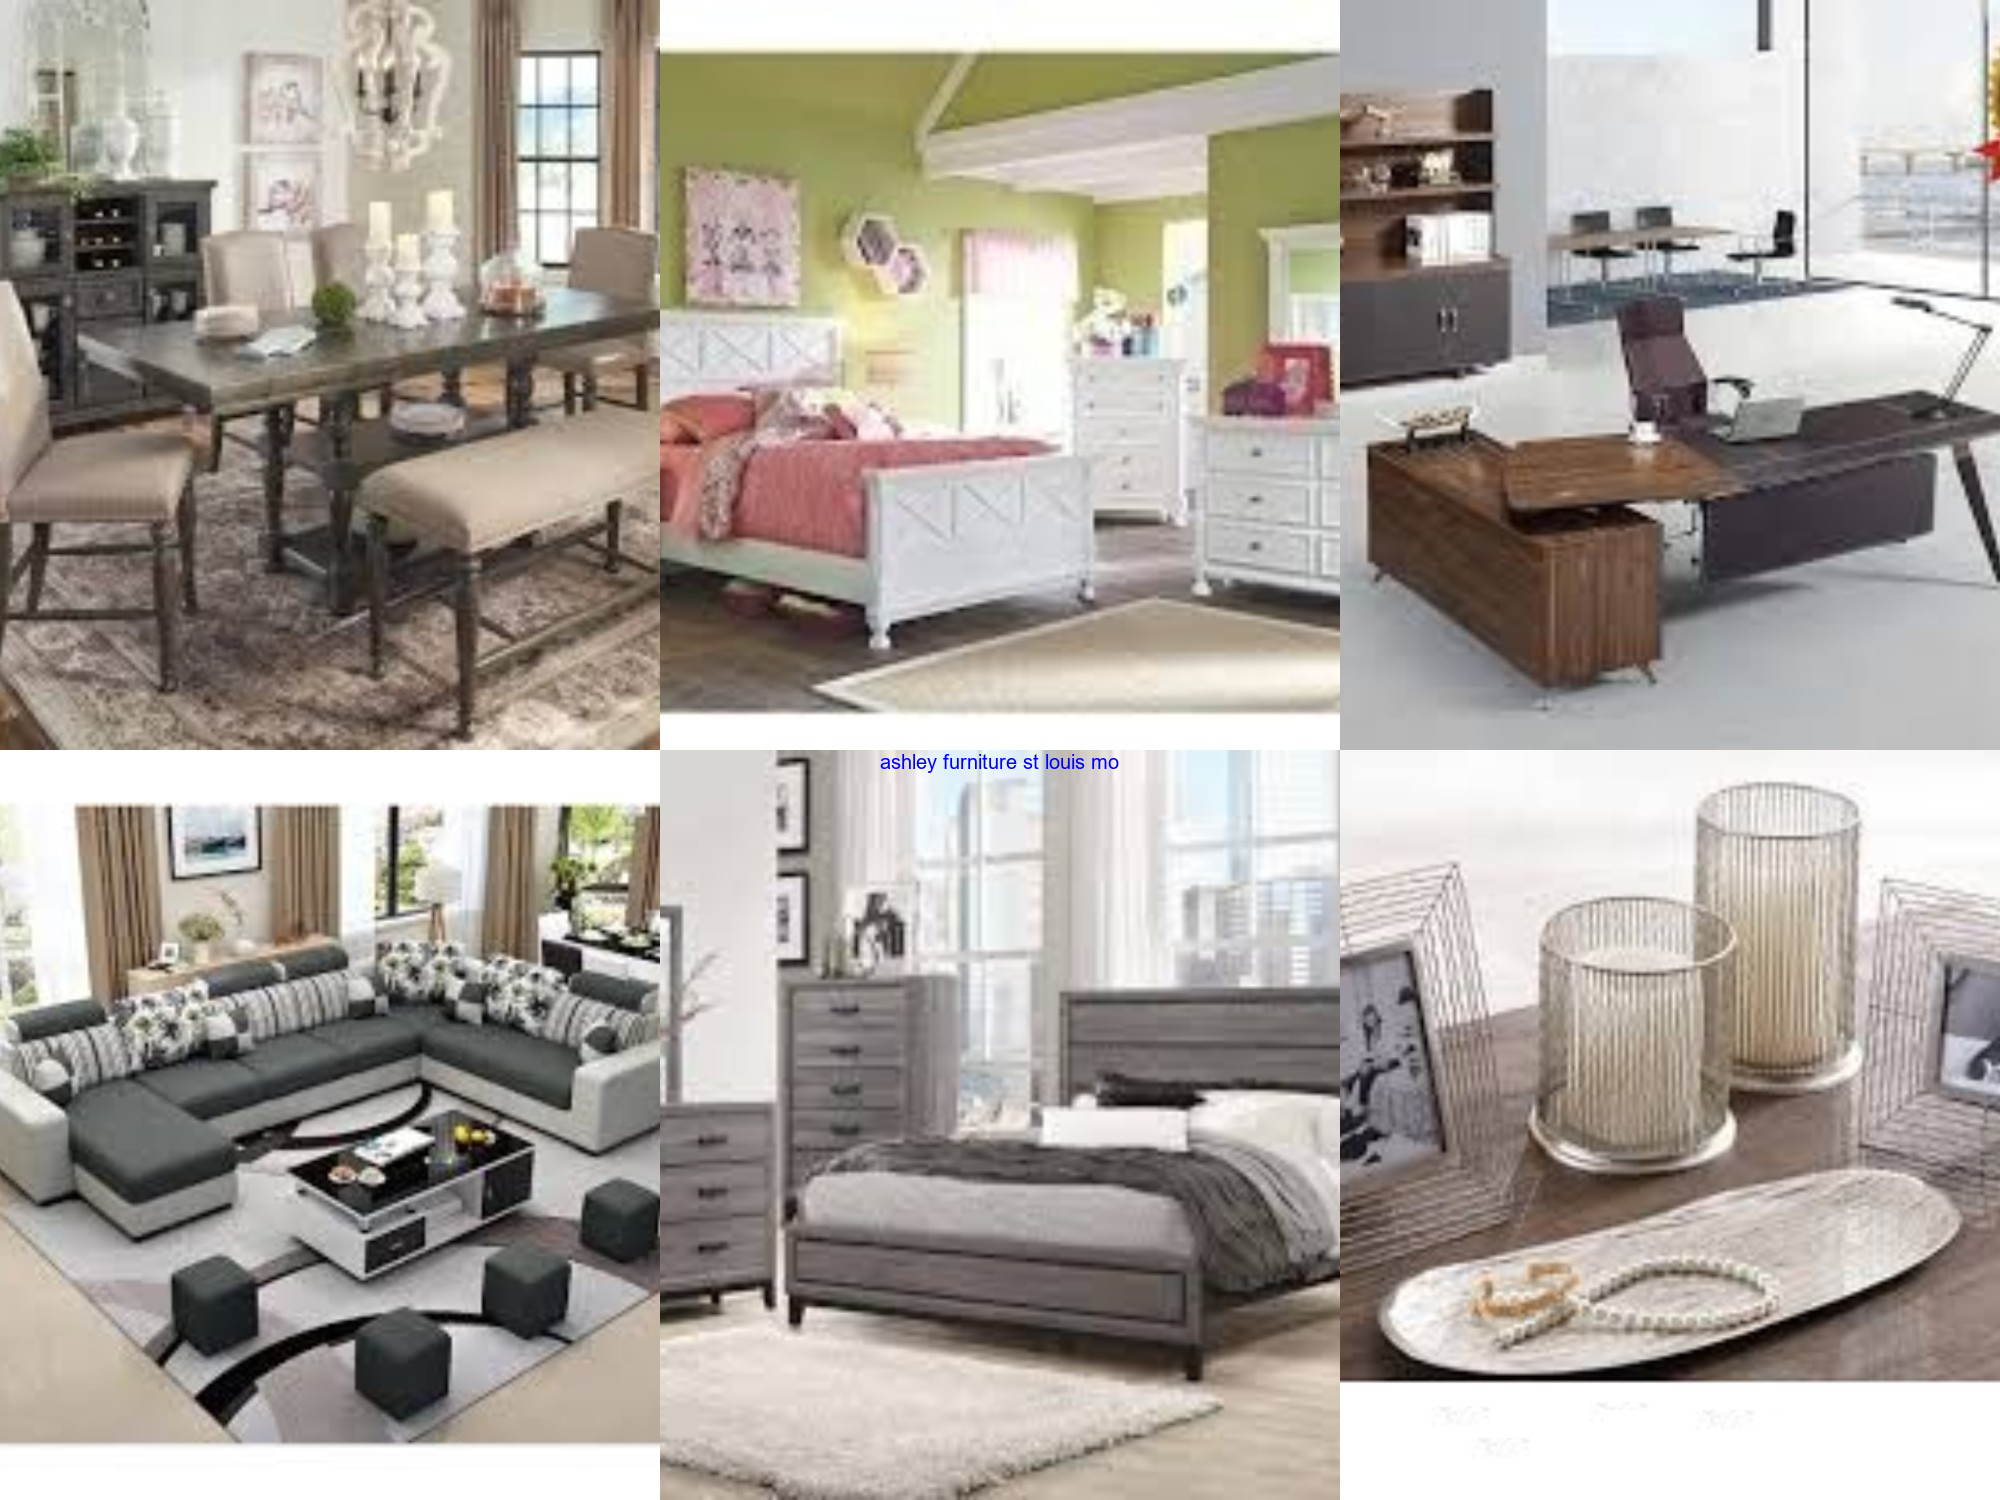 Ashley Furniture St Louis Mo I Might Suggest That You Visit This